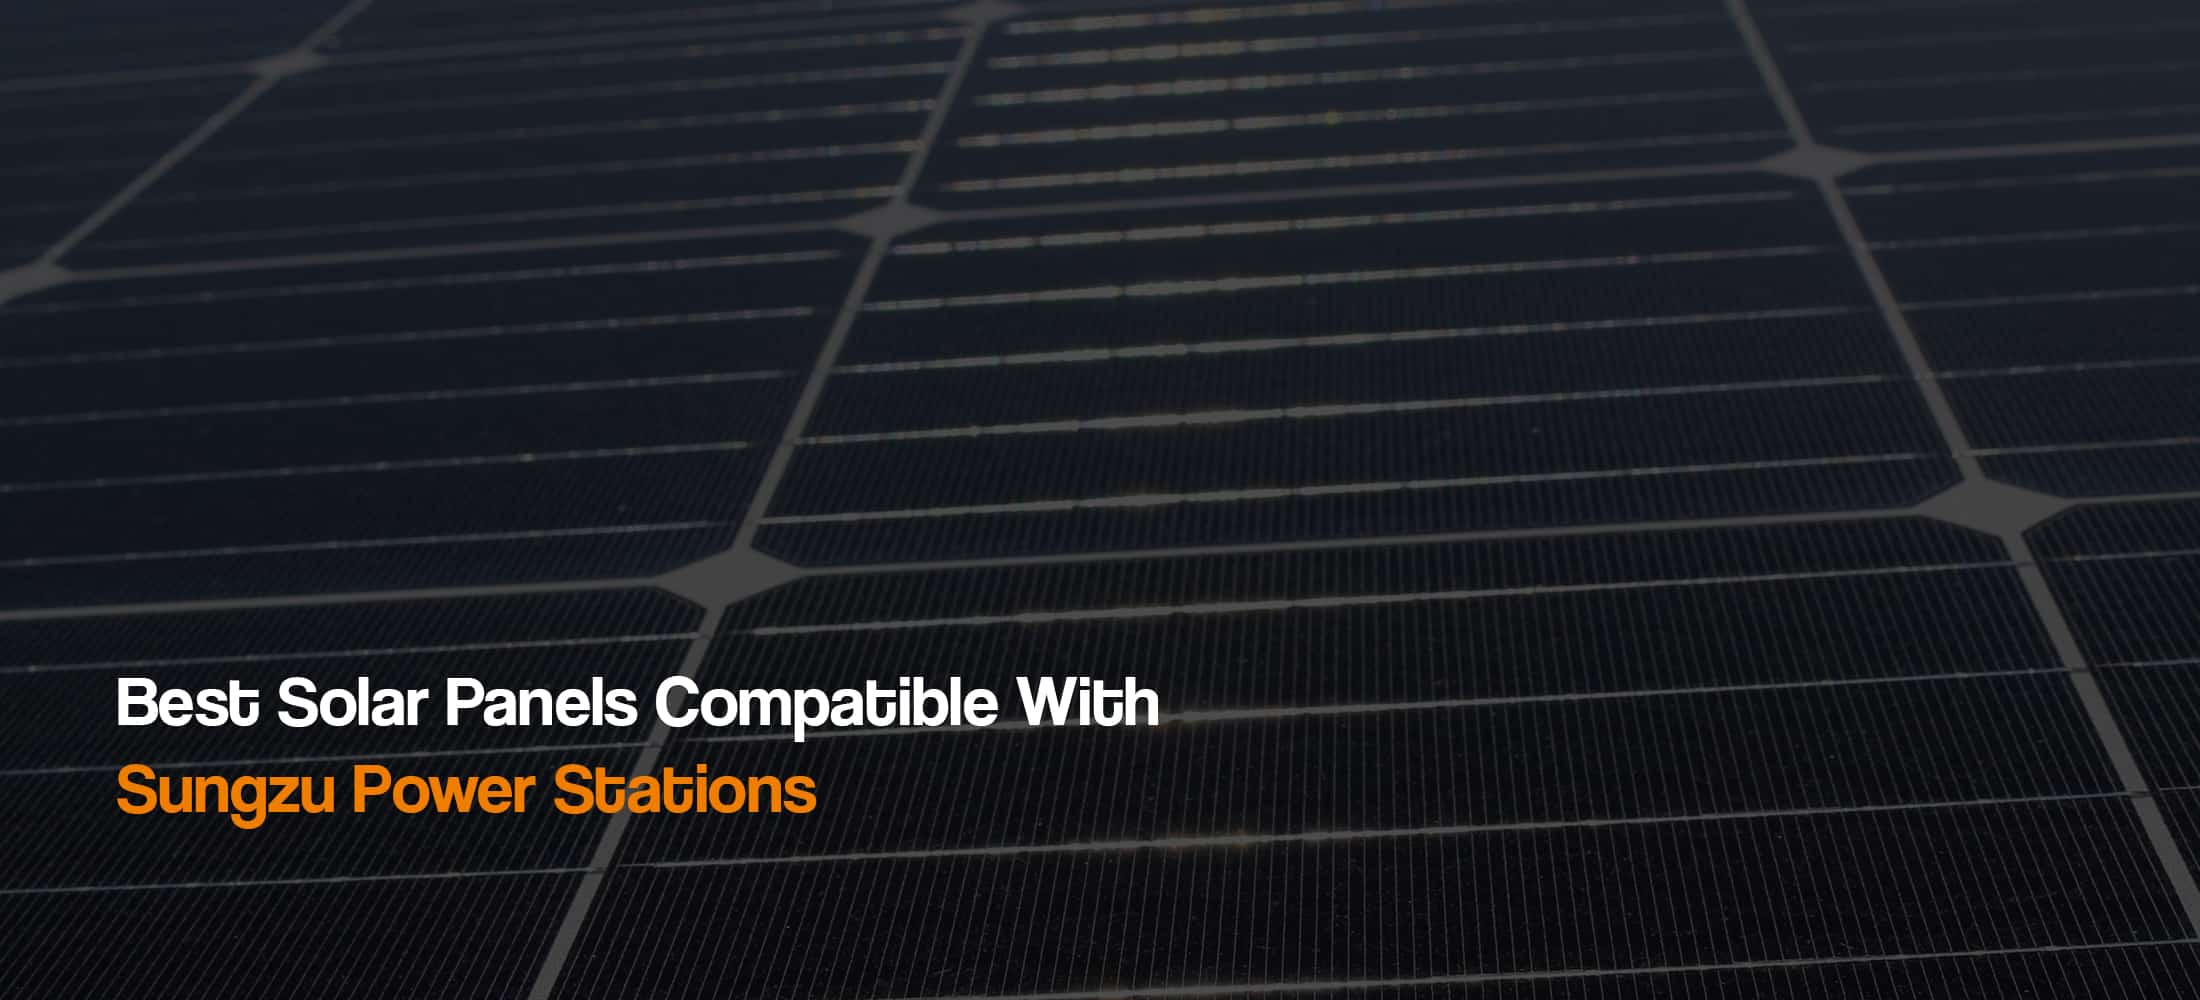 best-solar-panels-compatible-with-sungzu-power-station-solar-generator-the-solar-addict